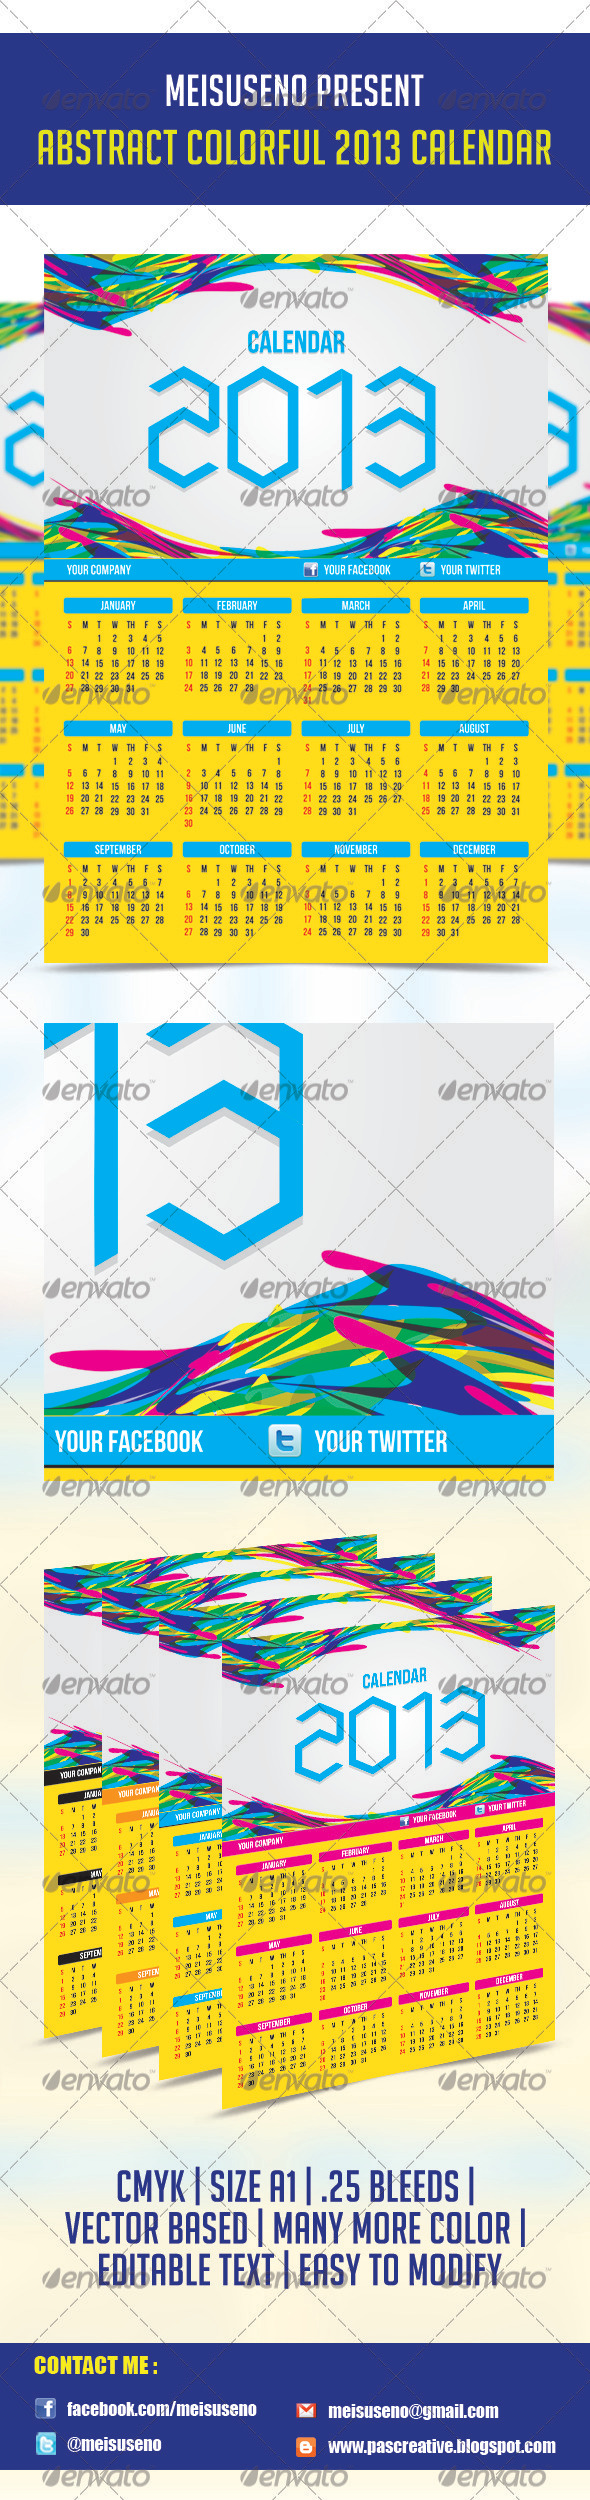 GraphicRiver Abstract Colorful 2013 Calendar Template 3656426